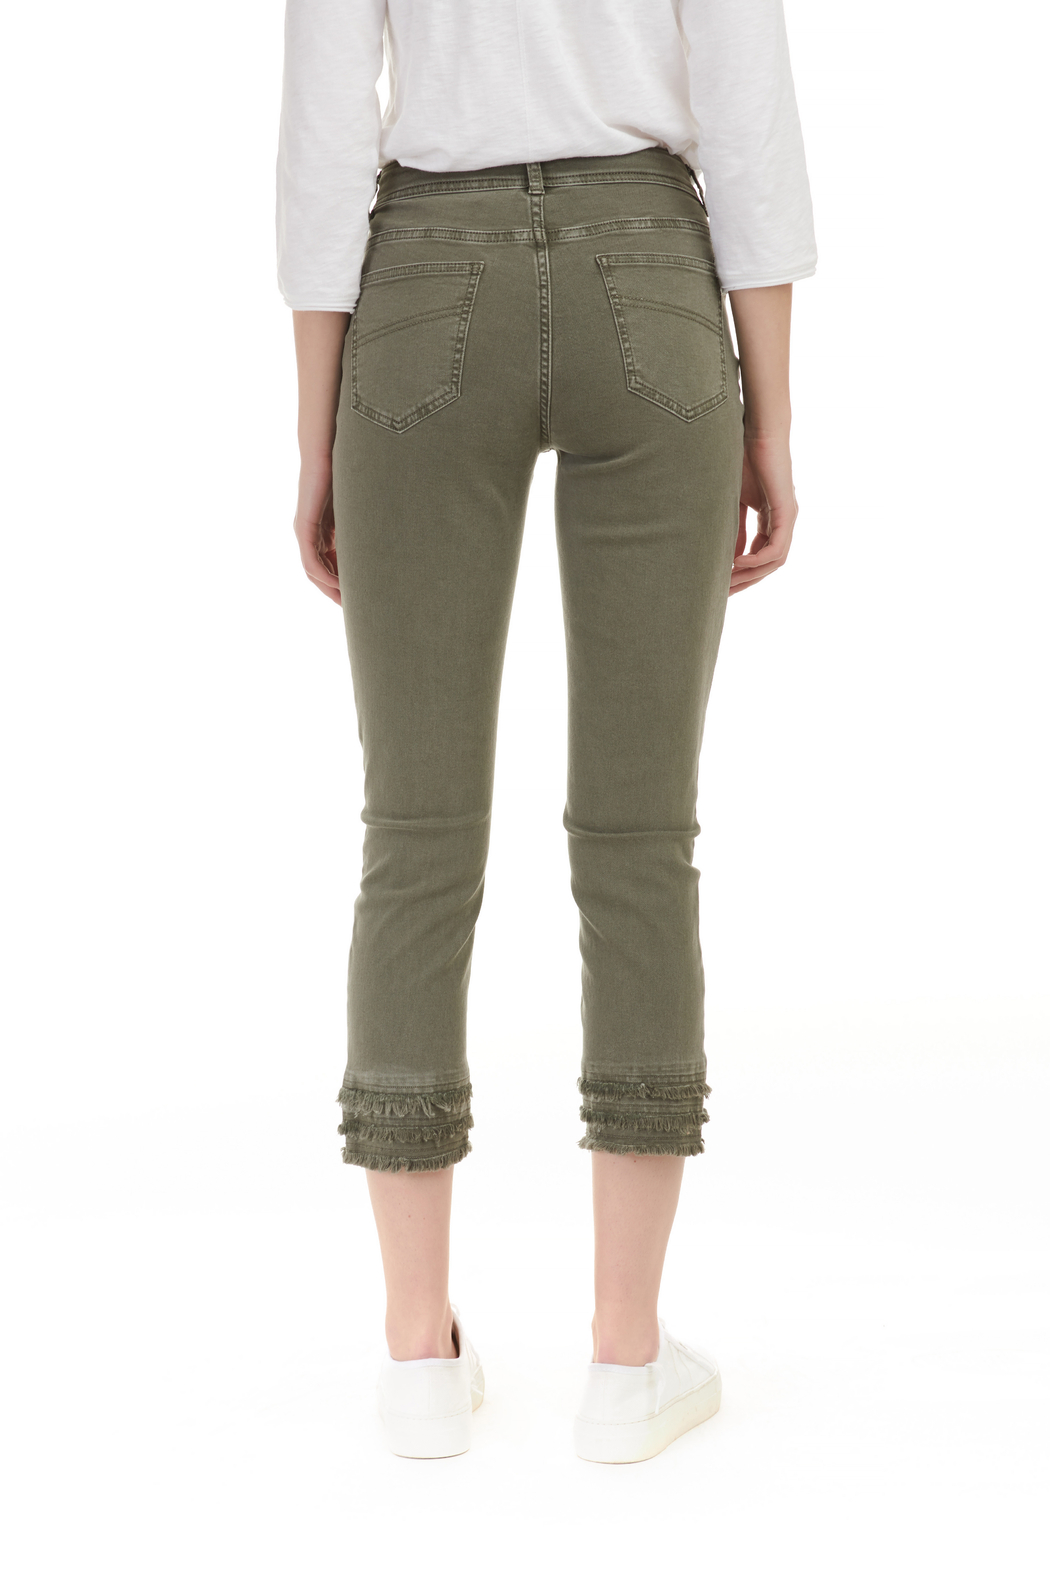 Charlie B. Twill Jeans with layered Fringe hem - Front Full Image